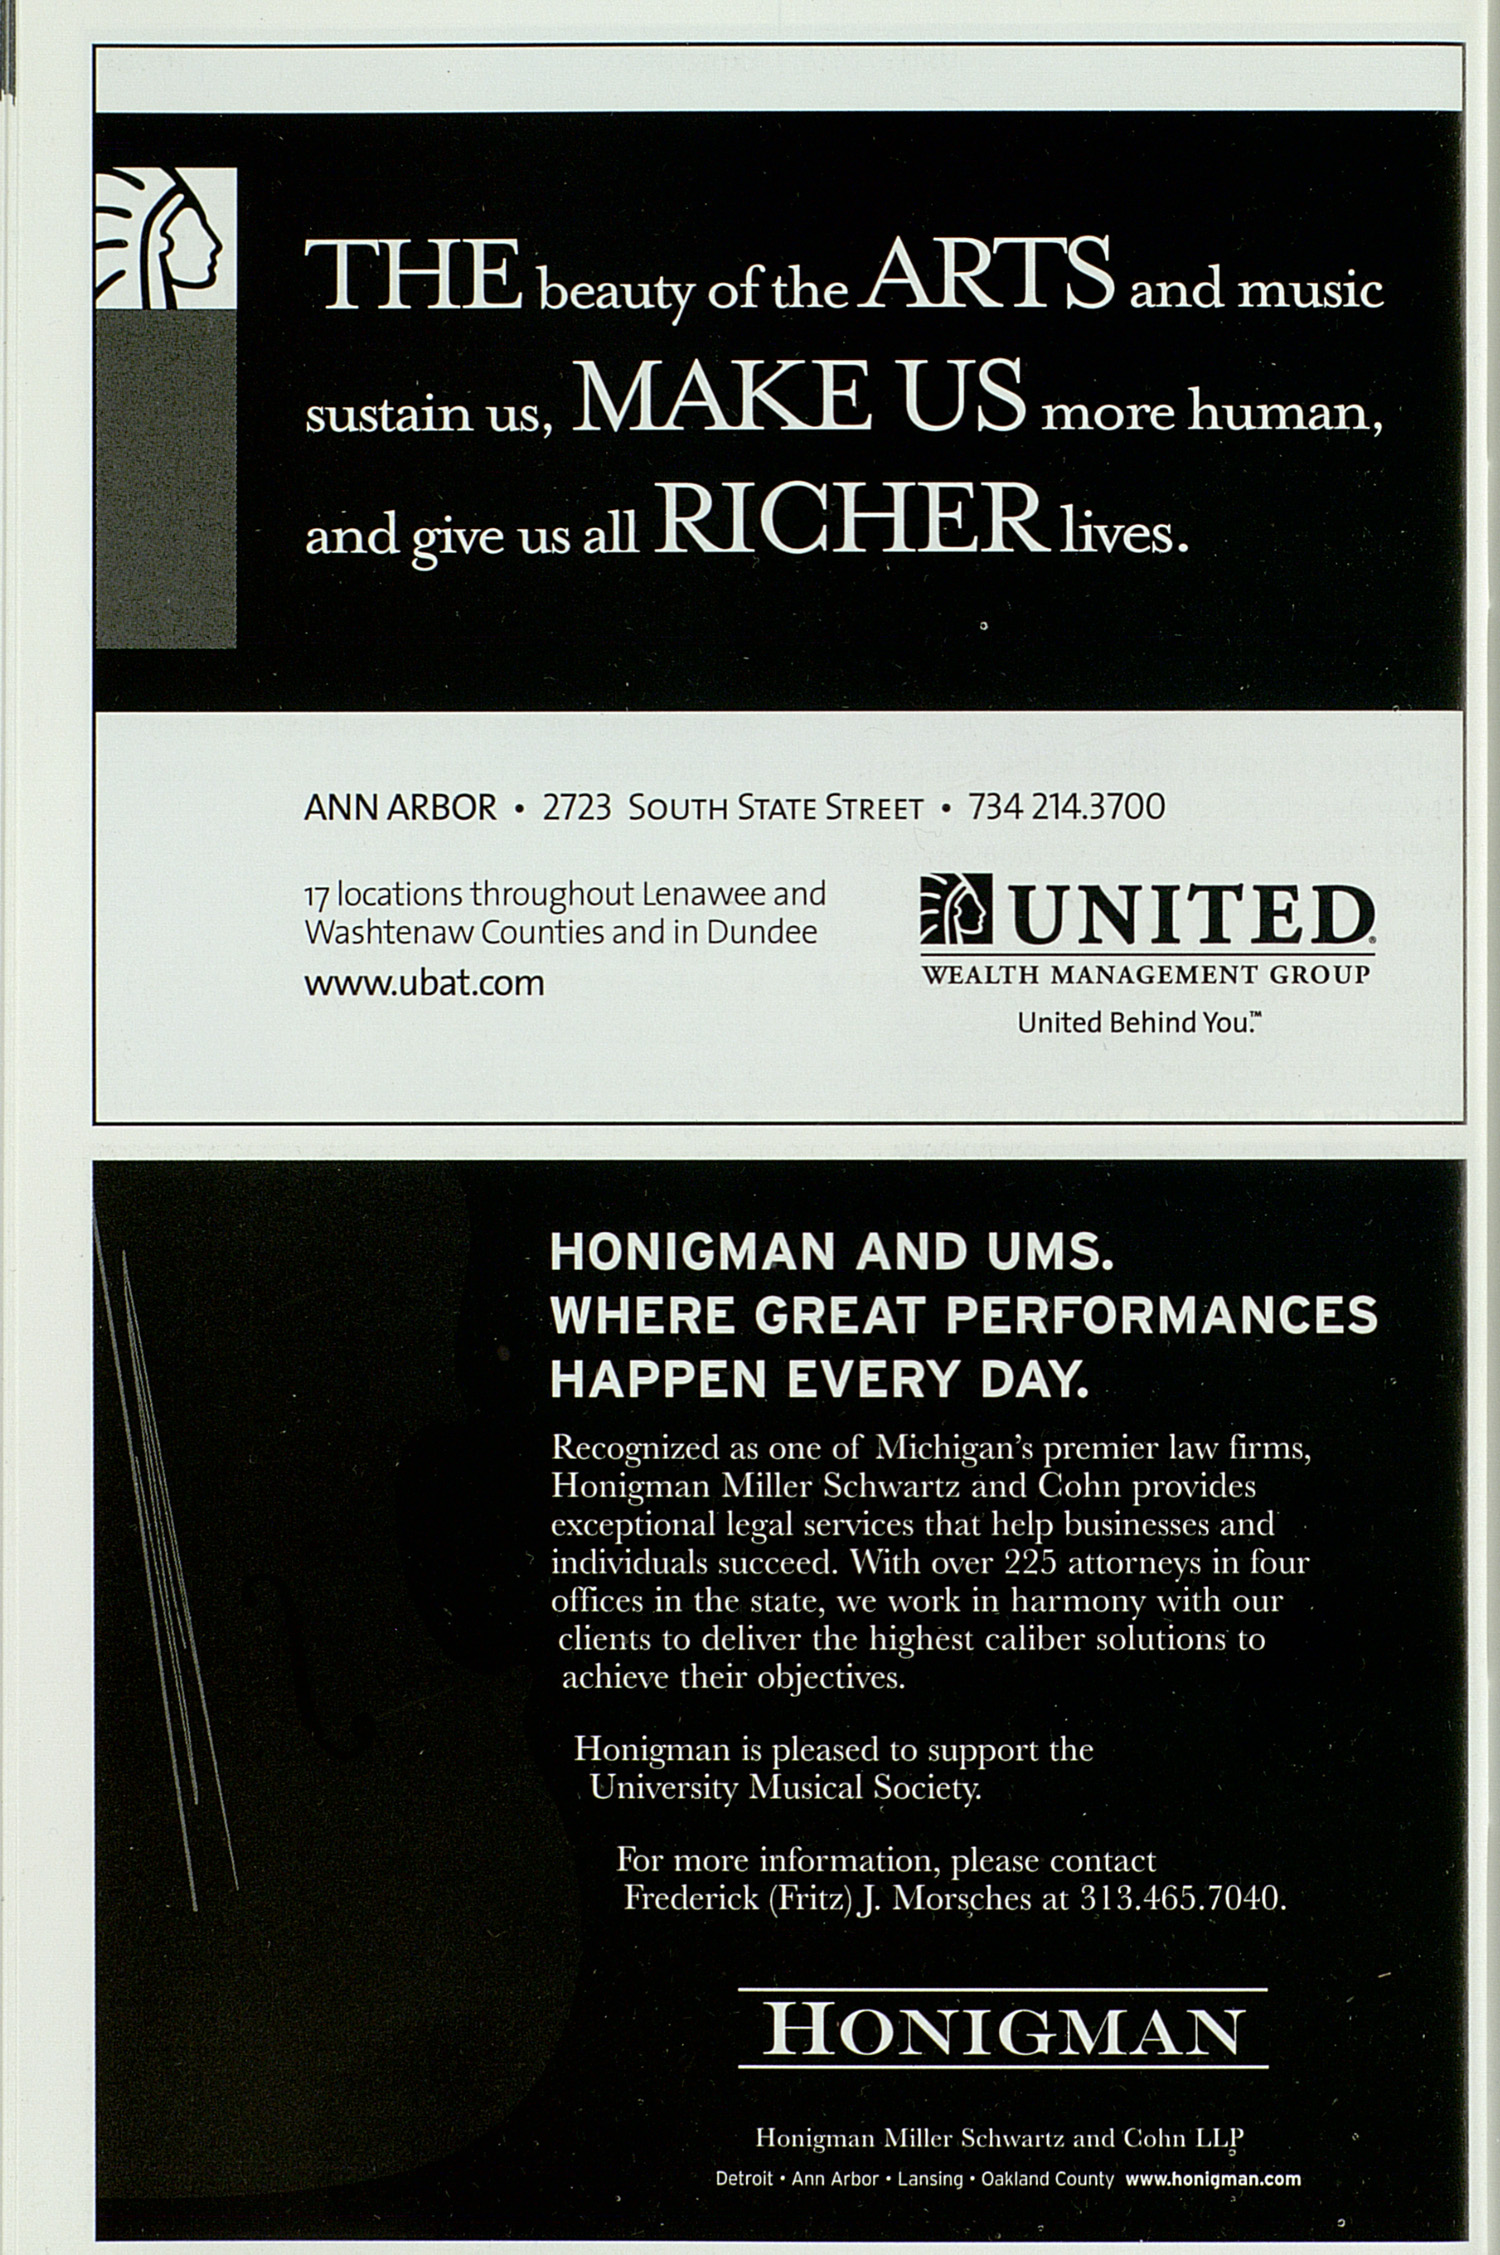 UMS Concert Program, Thursday Nov. 08 To 18: University Musical Society: Fall 2007 - Thursday Nov. 08 To 18 --  image